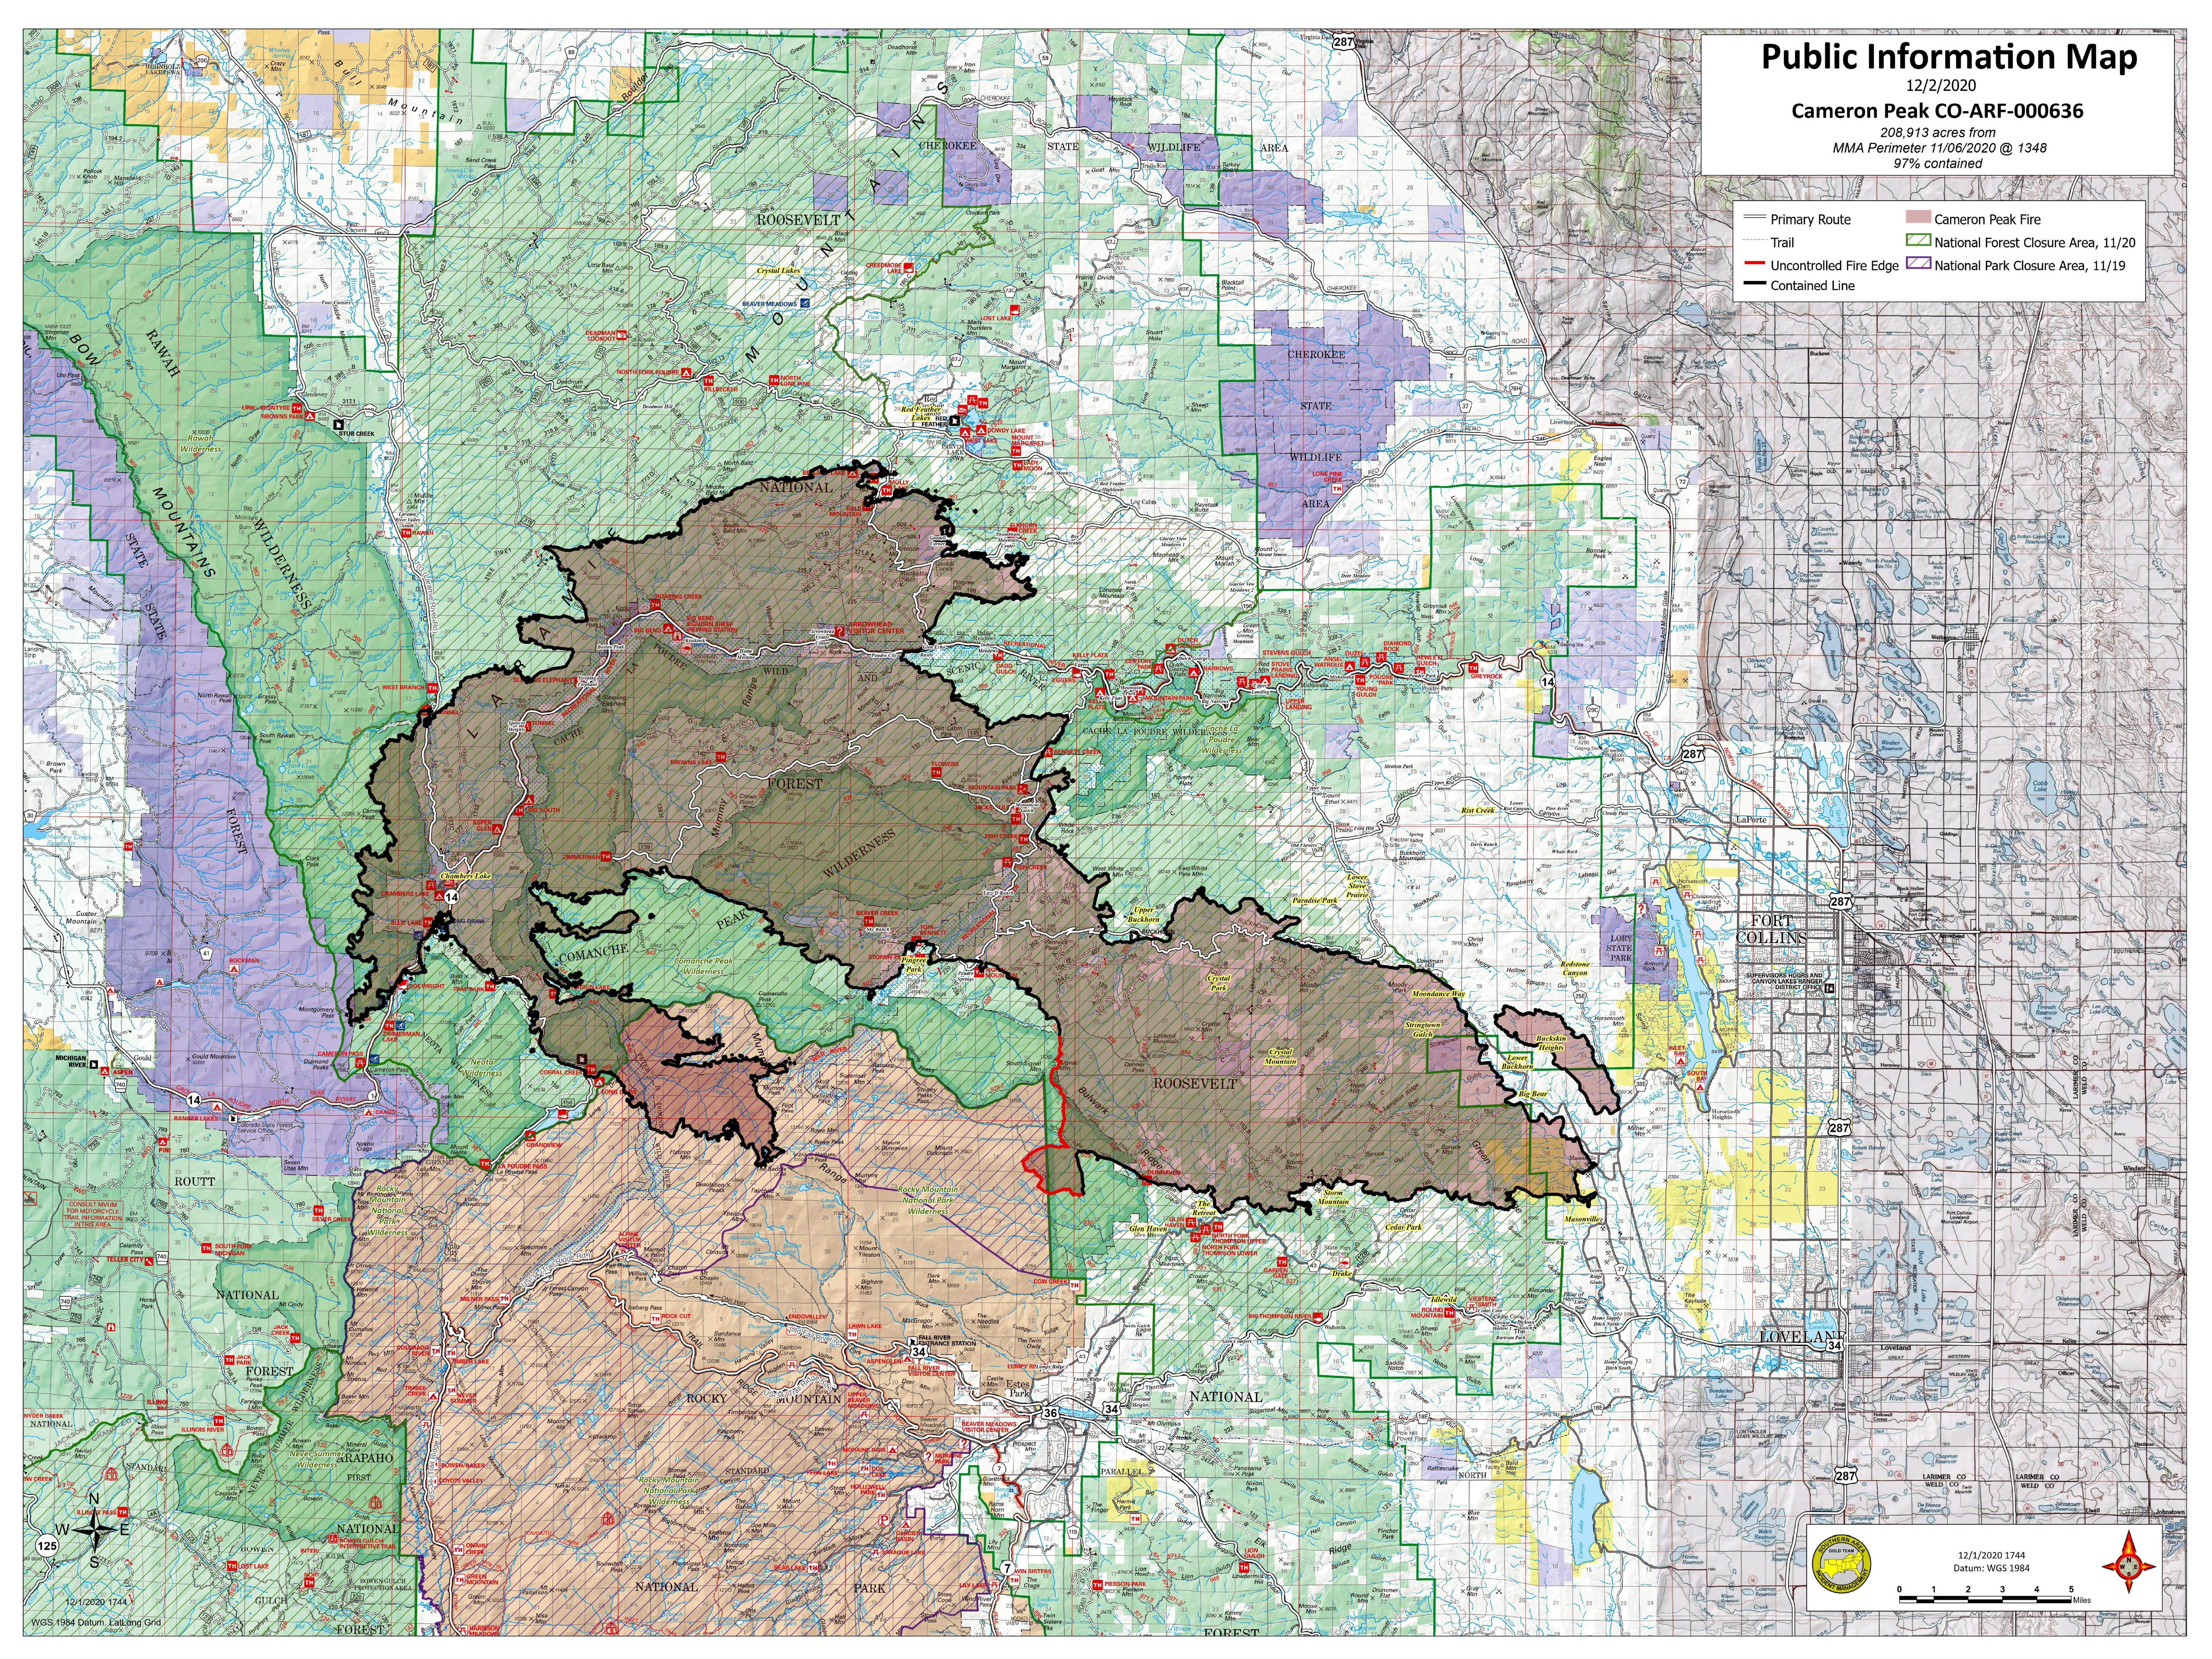 Cameron Peak Fire Map-December 2, 2020